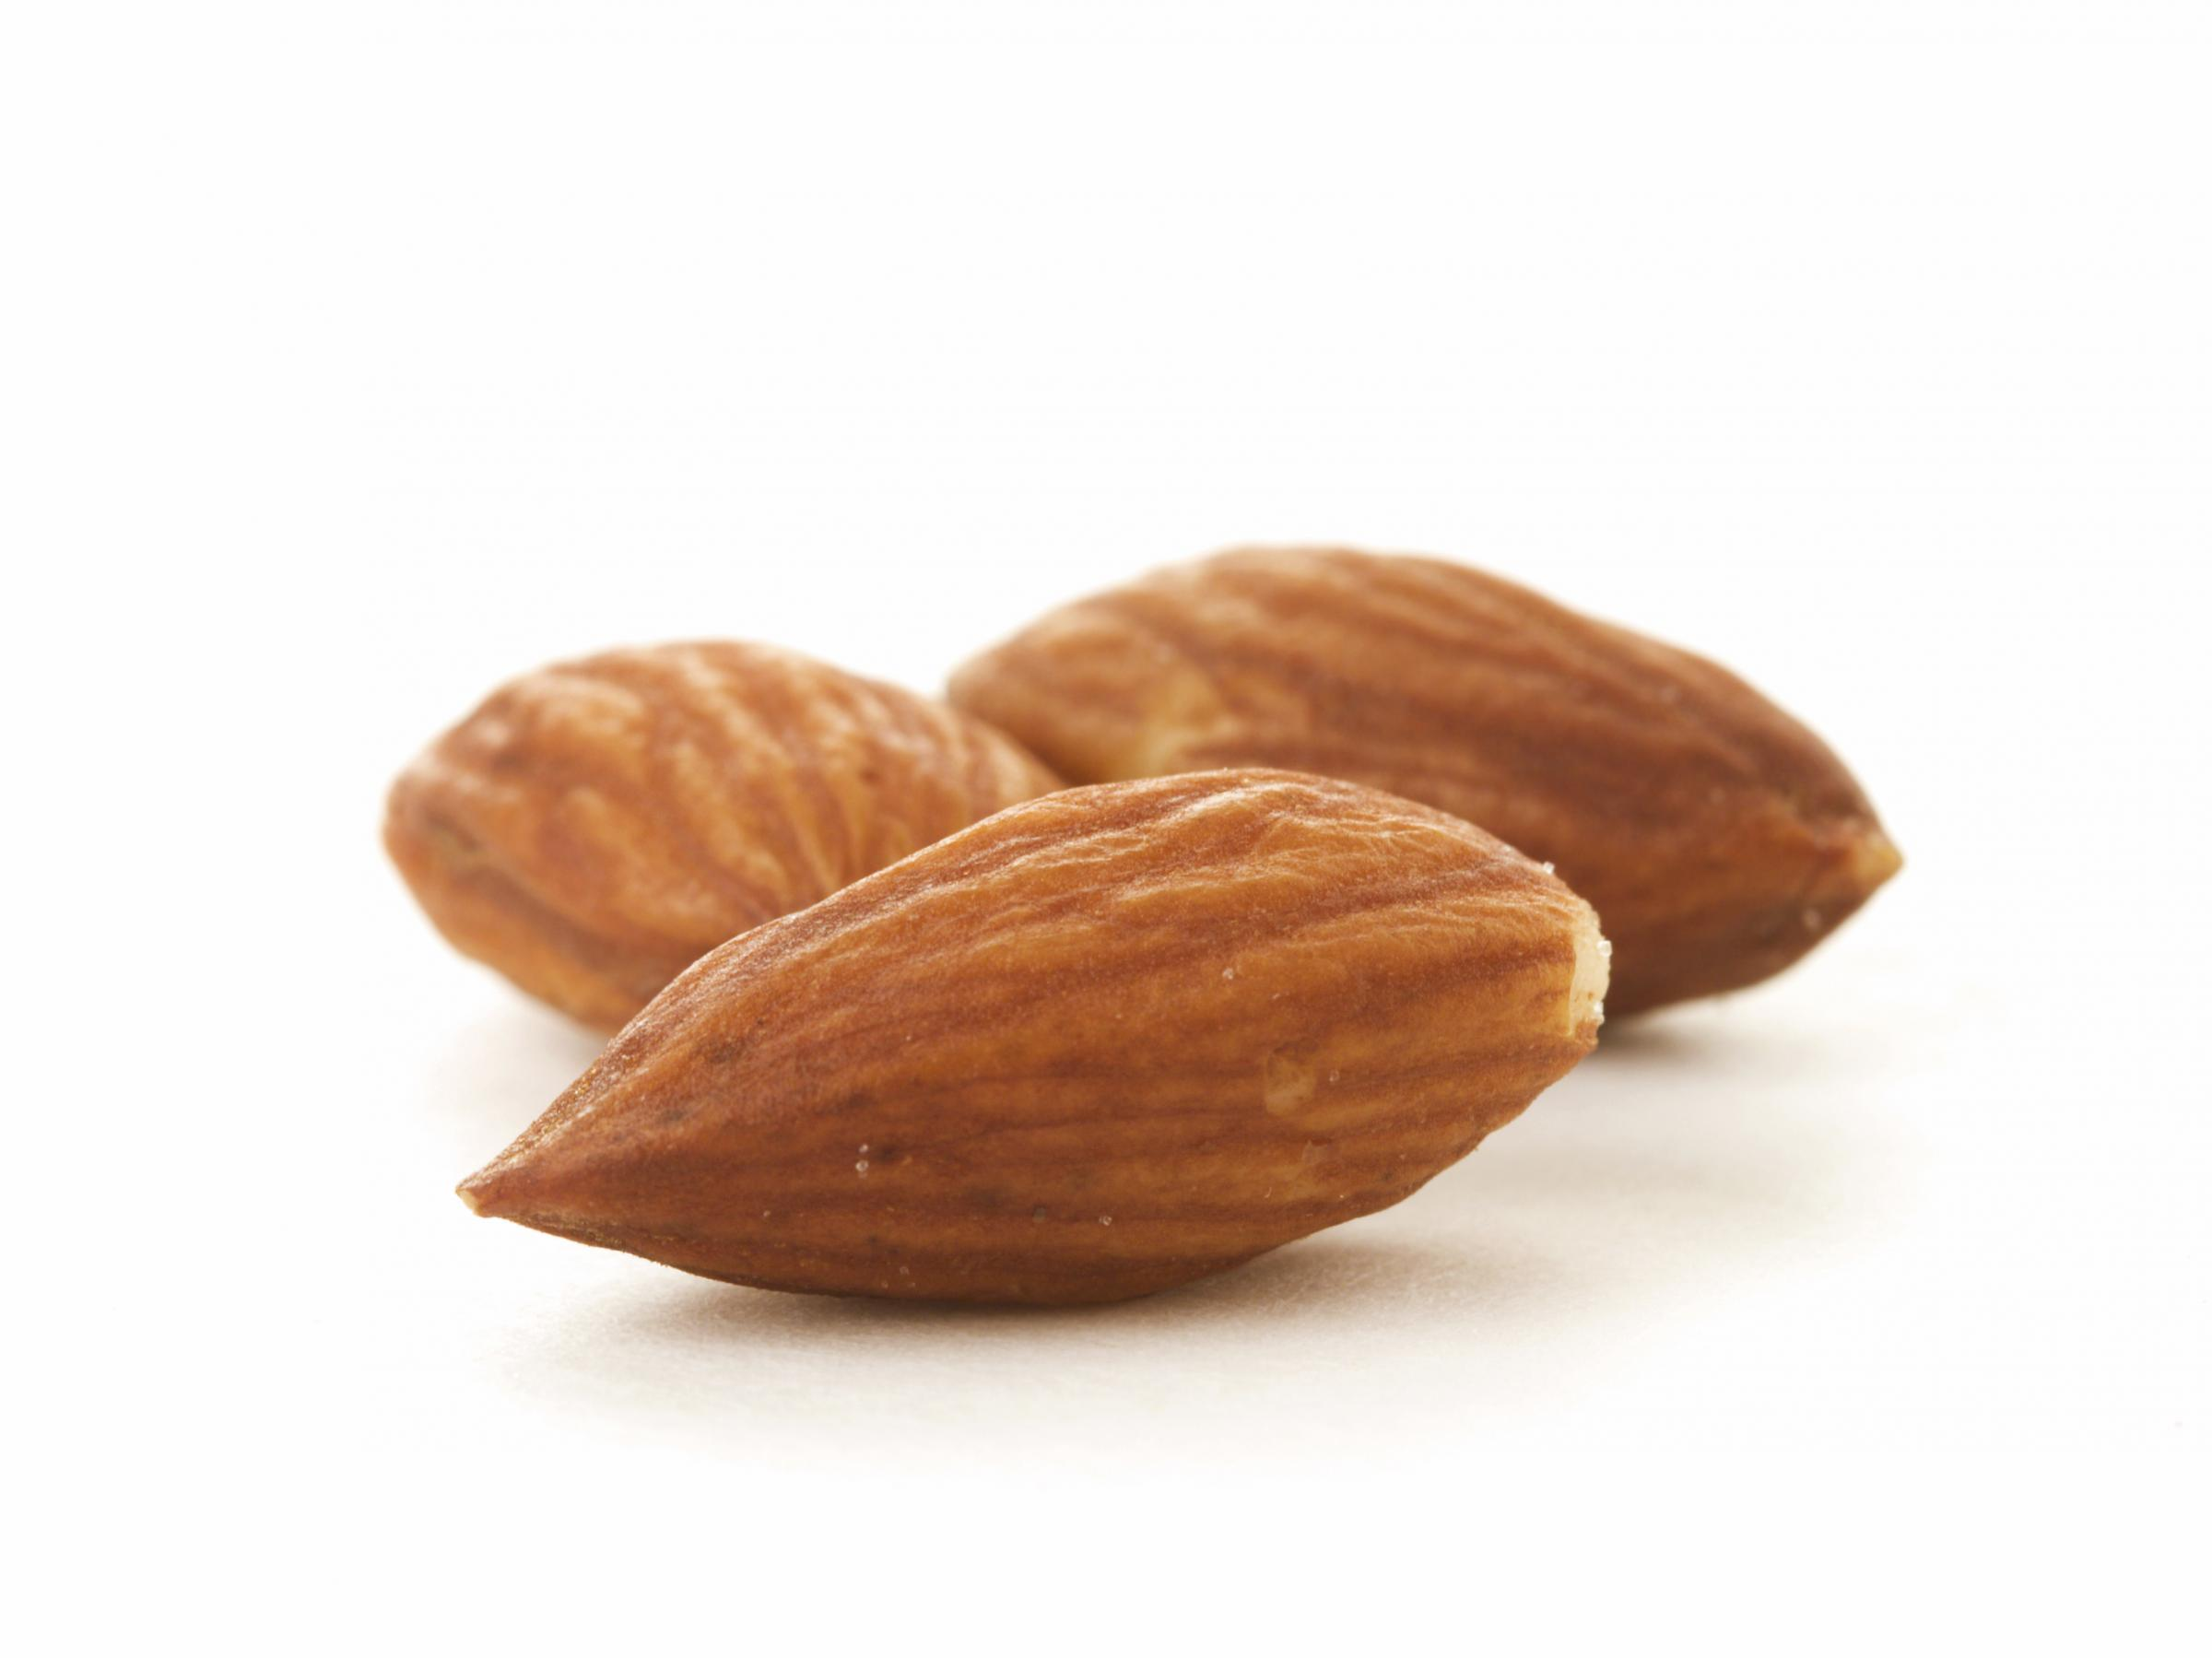 Why Do We Describe Asian Eyes As 'Almond-Shaped'? | MTPR Almonds